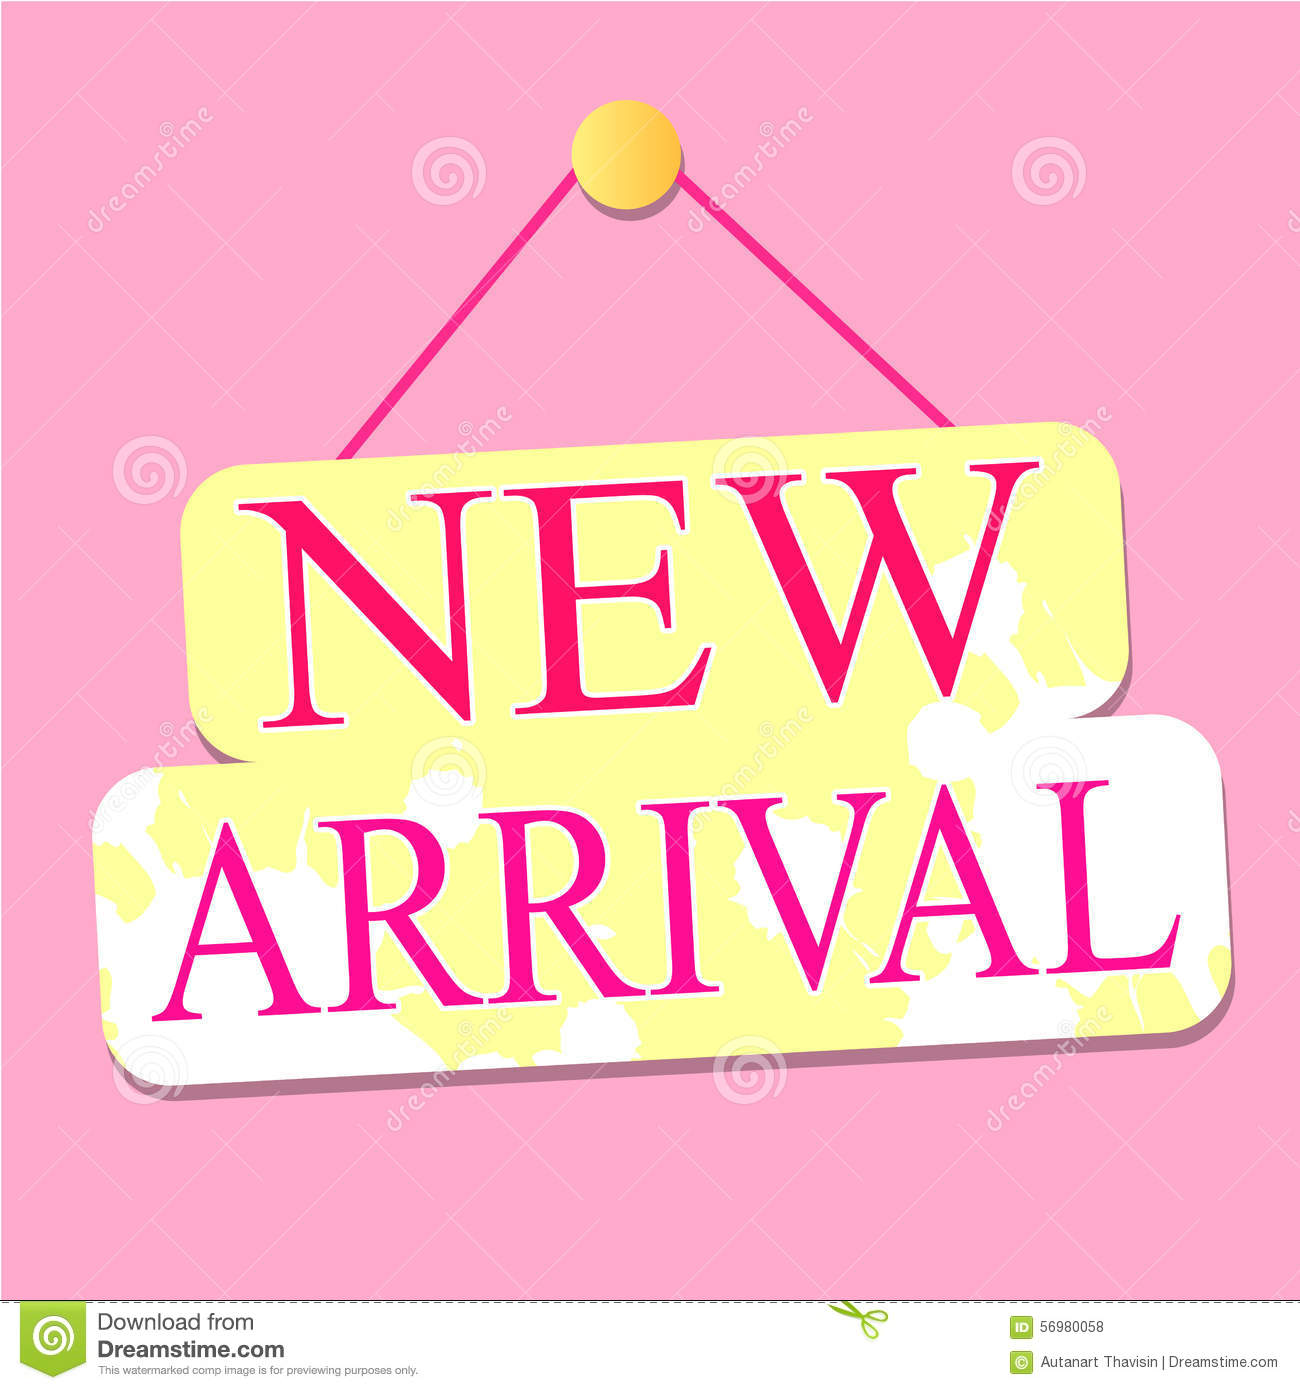 New arrivals clipart jpg free download Center clipart arrival time - 140 transparent clip arts ... jpg free download